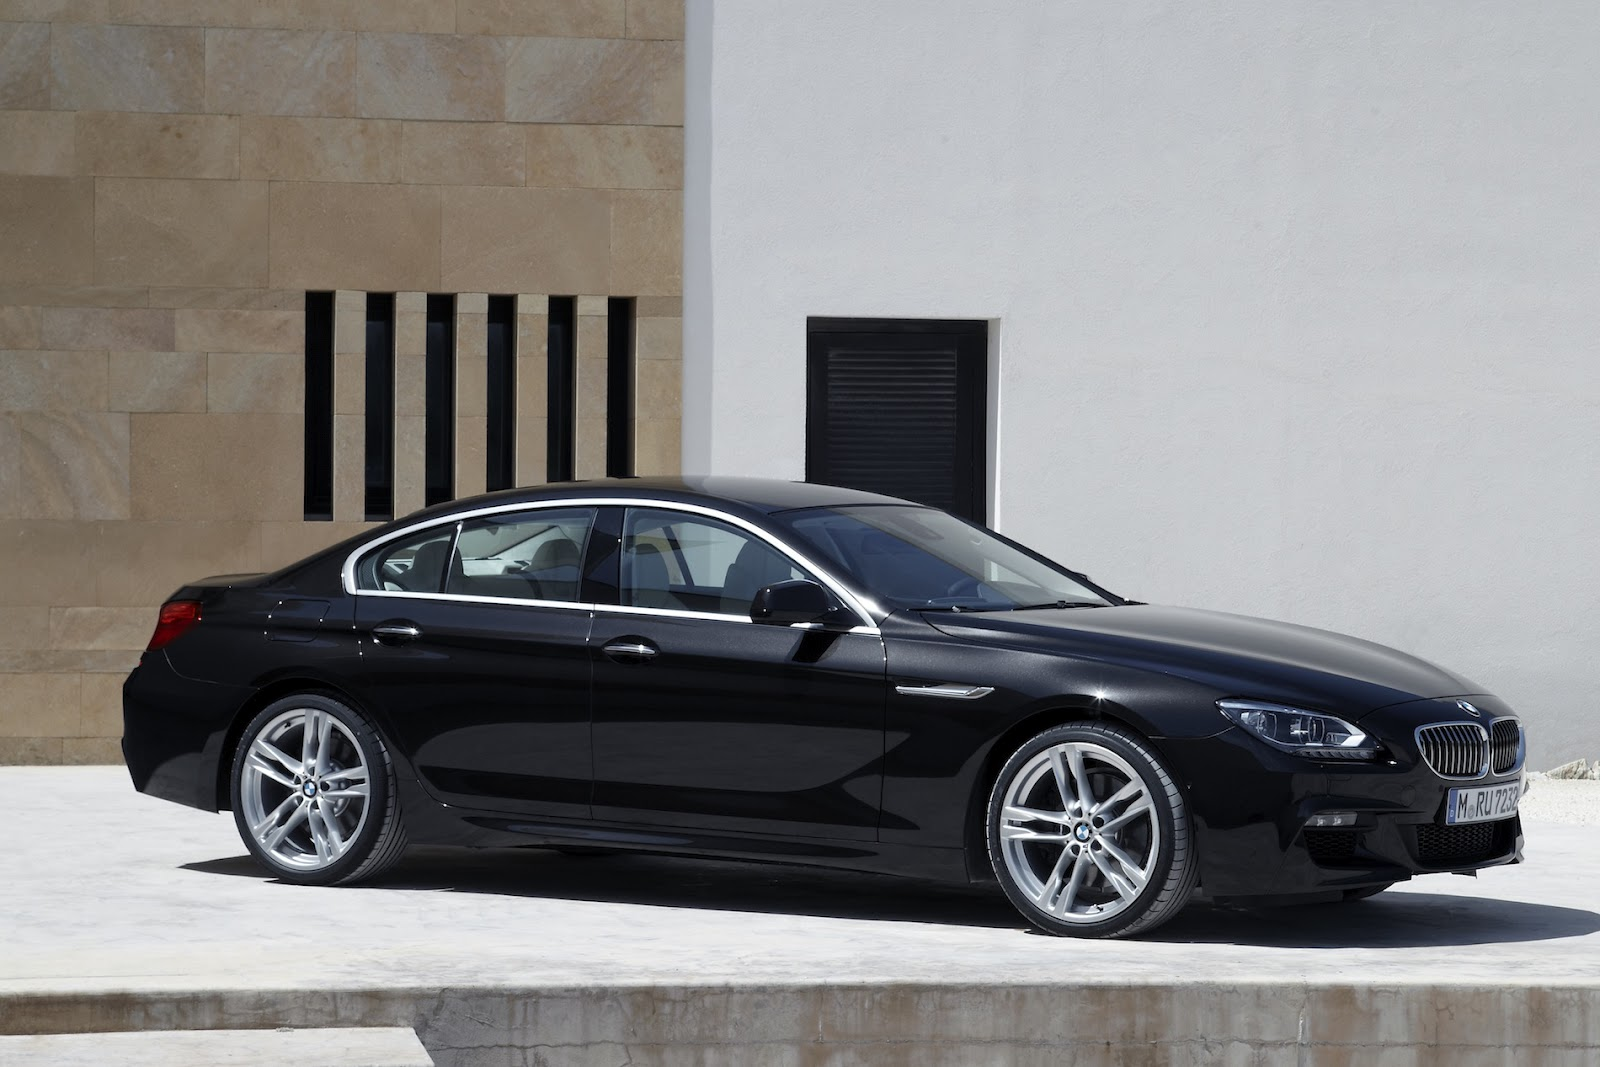 Production 2013 Bmw 650i Gran Coupe Gallery Bmw Markham